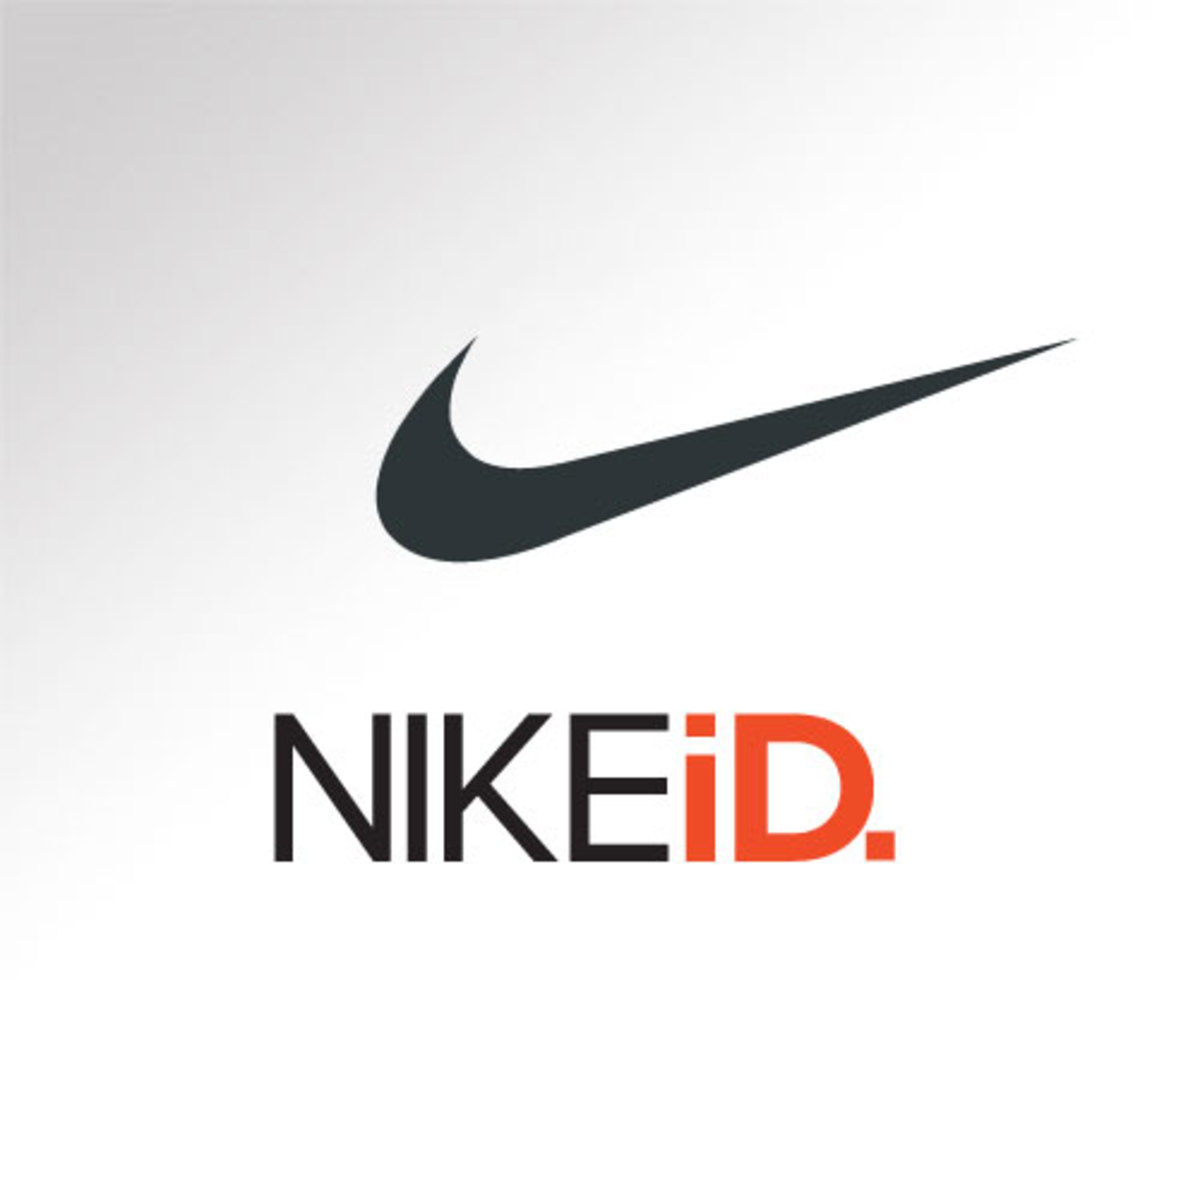 NikeiD: One Can Hope